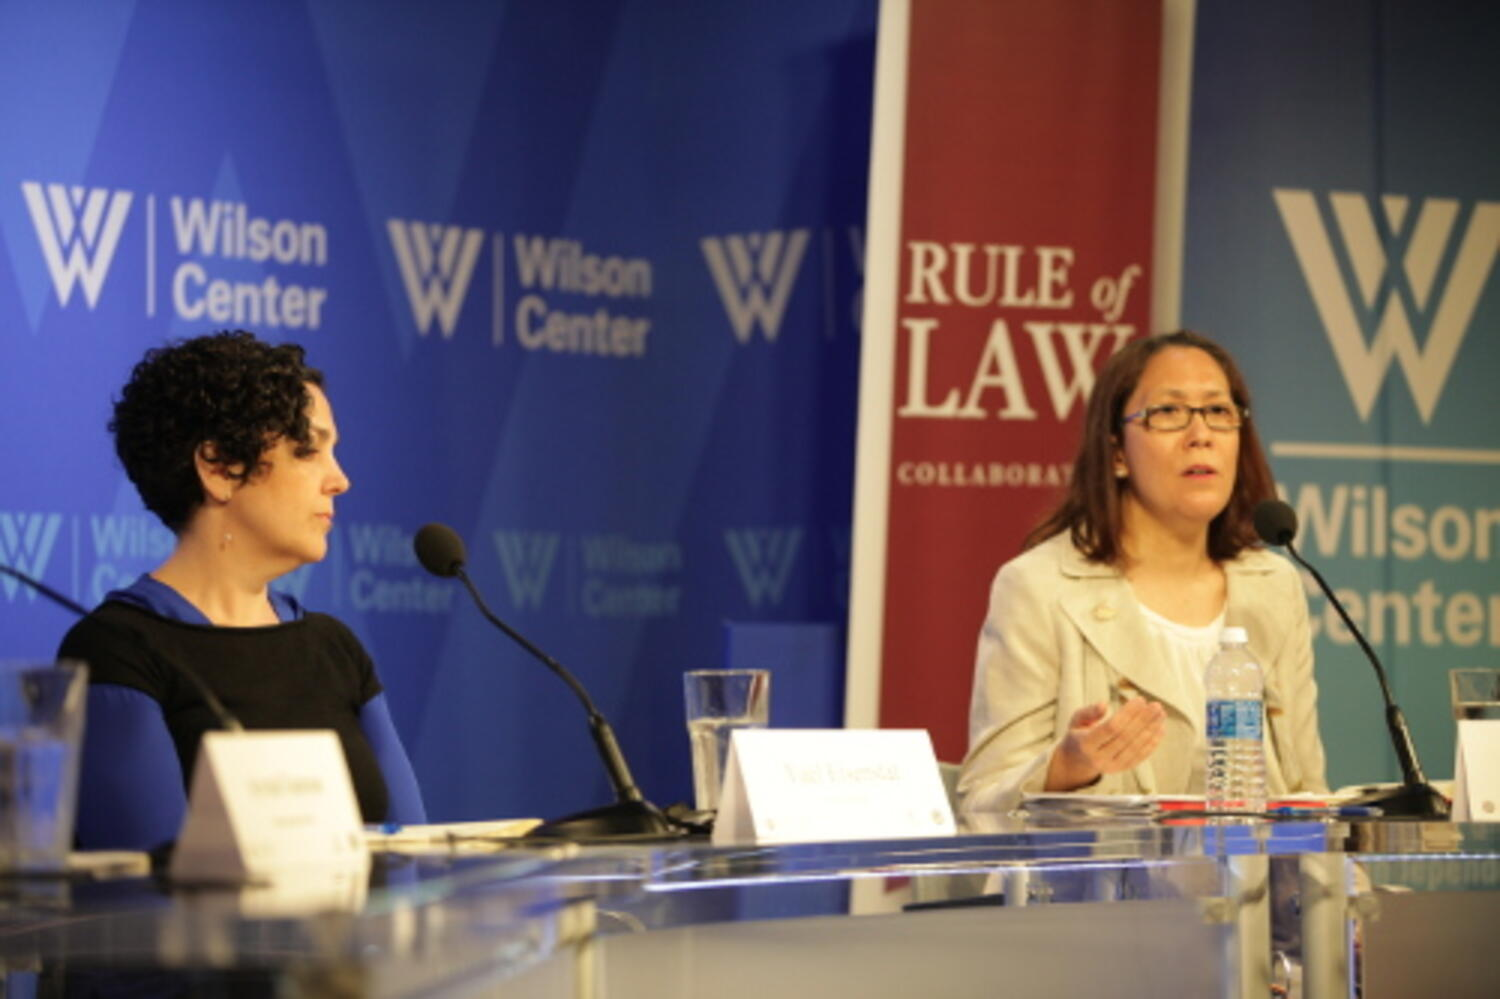 Terry Jennings speaking at the Wilson Center about the Rule of Law